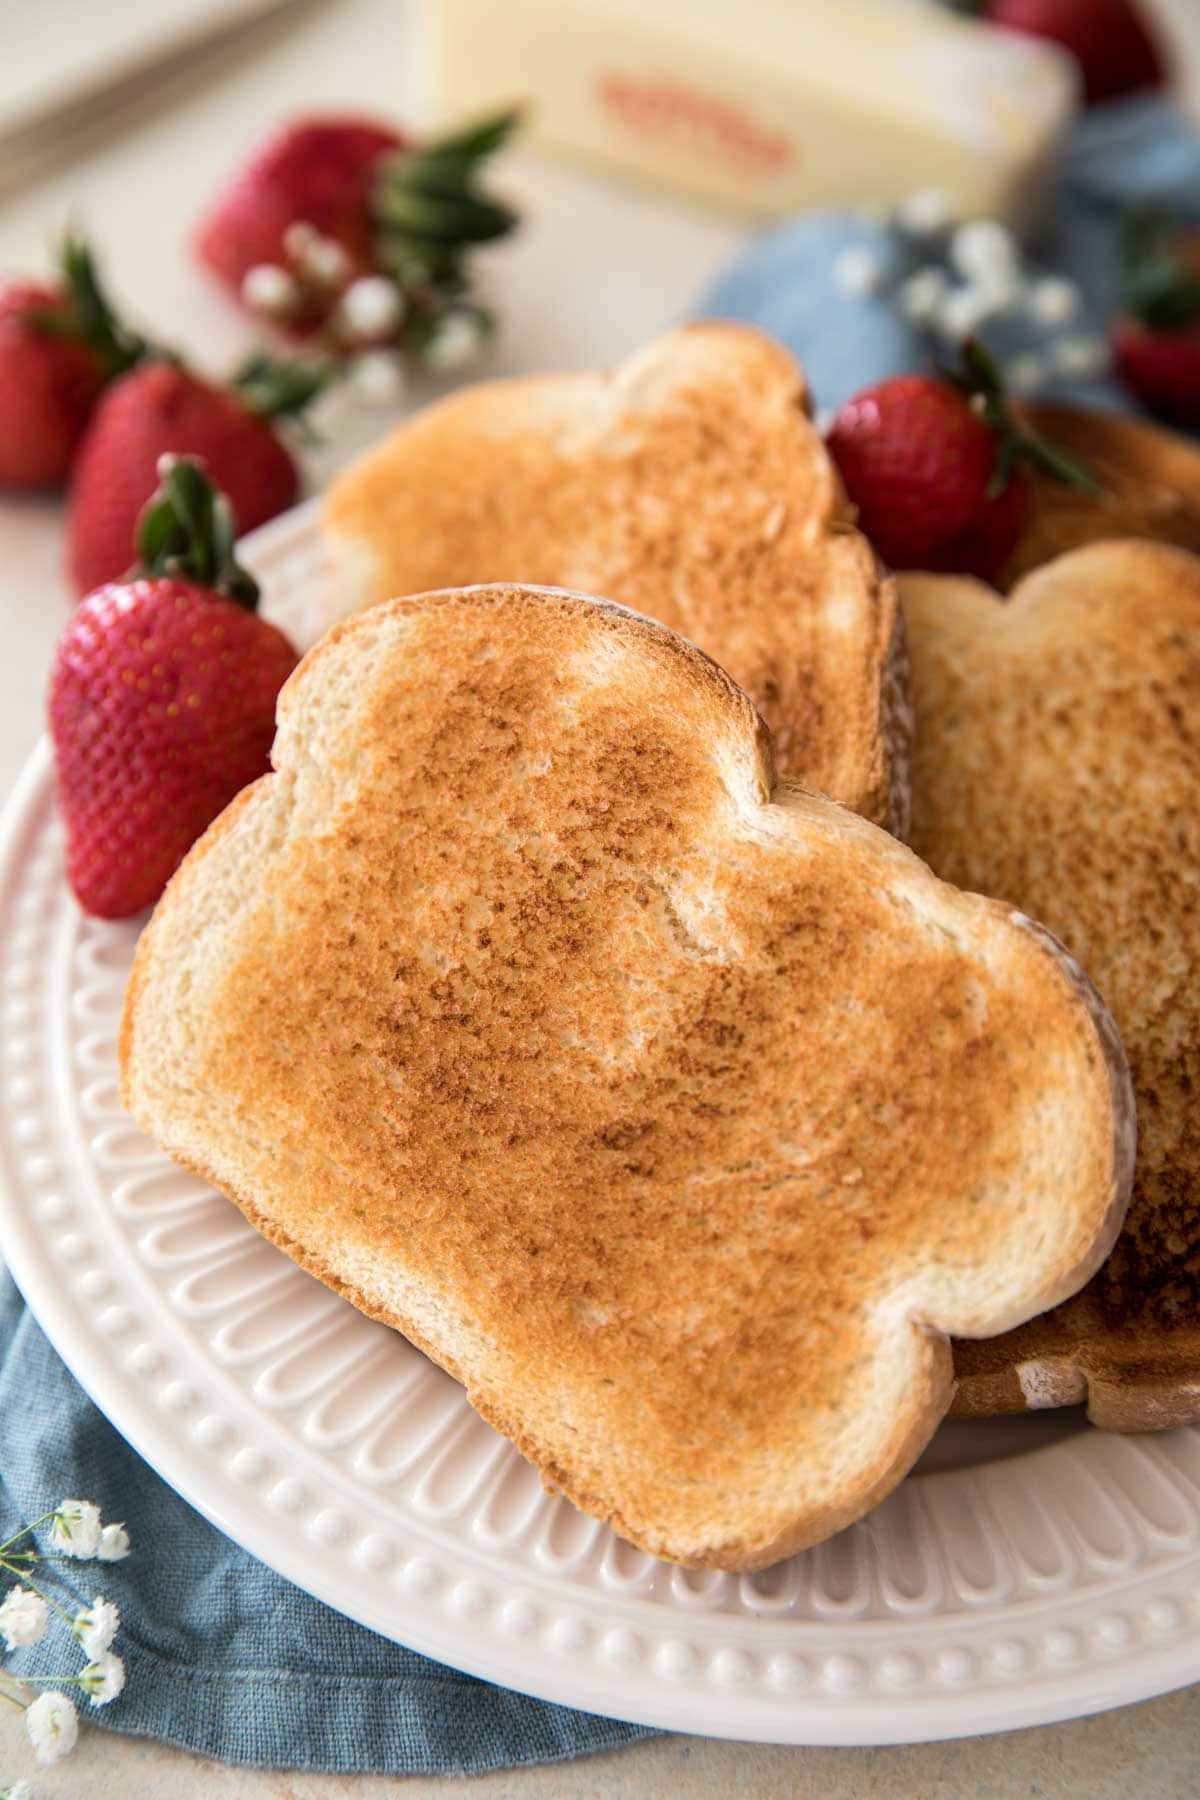 Toast on a white plate with strawberries in the background